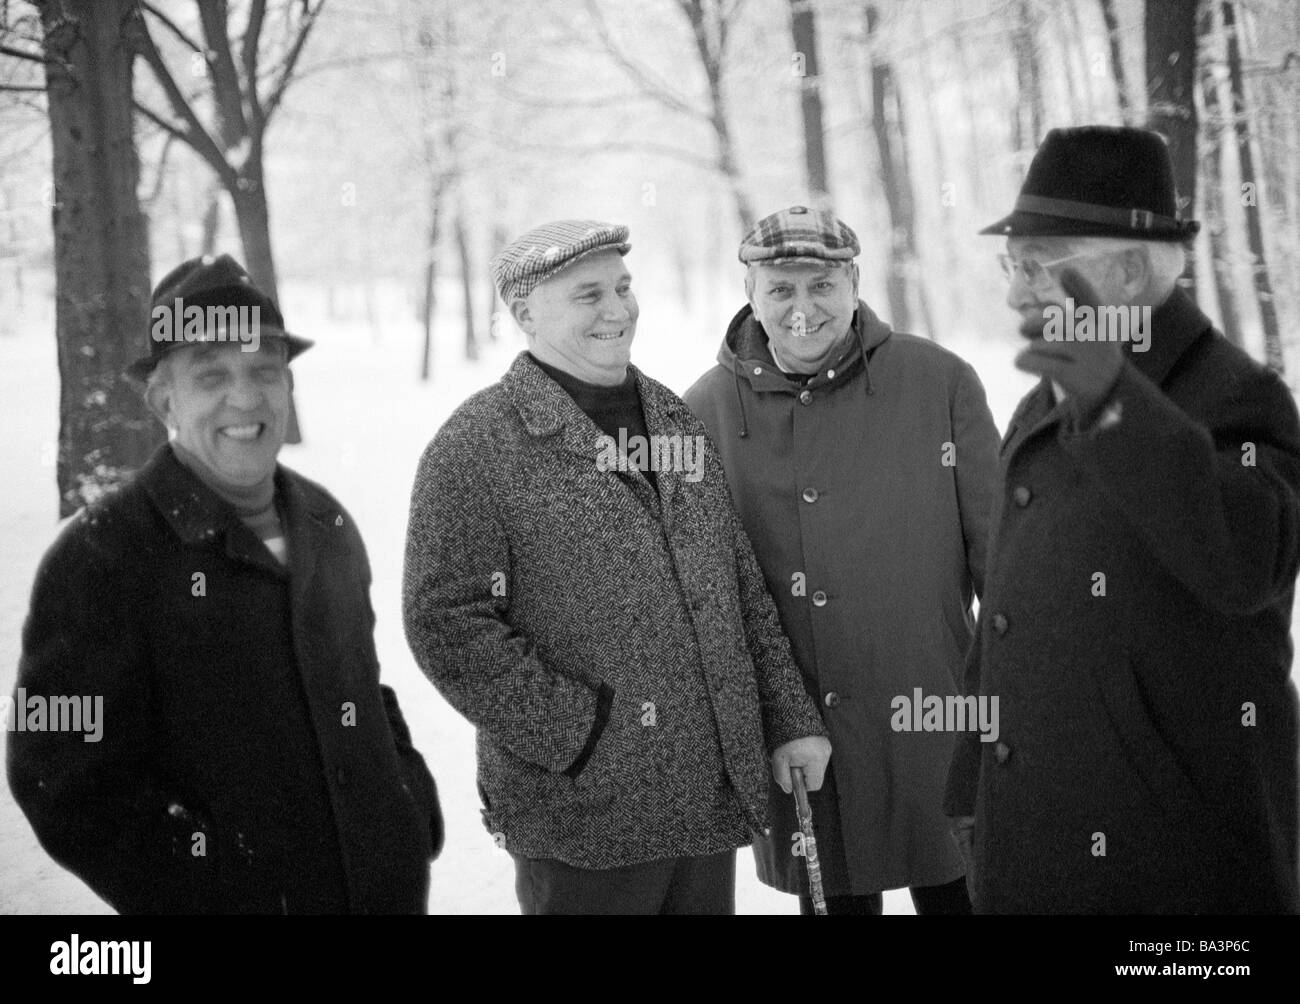 Seventies, black and white photo, people, four older men take a walk, retired persons, winter, snow, walking stick, - Stock Image